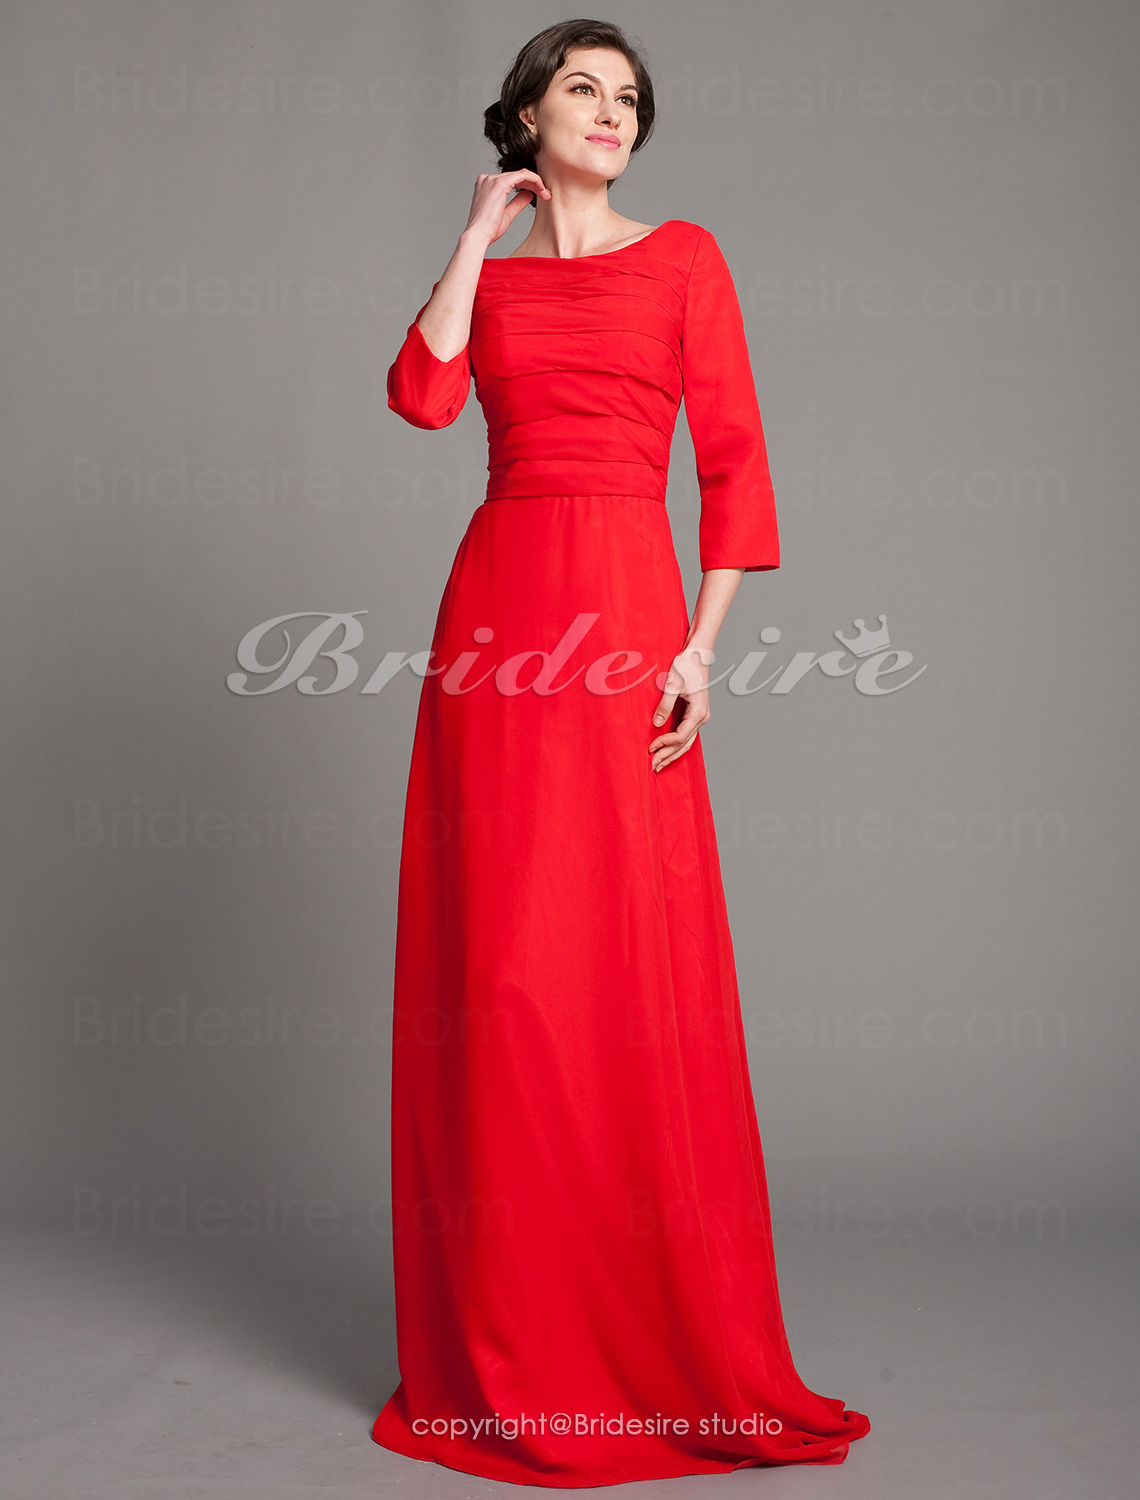 Sheath/Column Chiffon Floor-length Bateau Mother of the Bride Dr